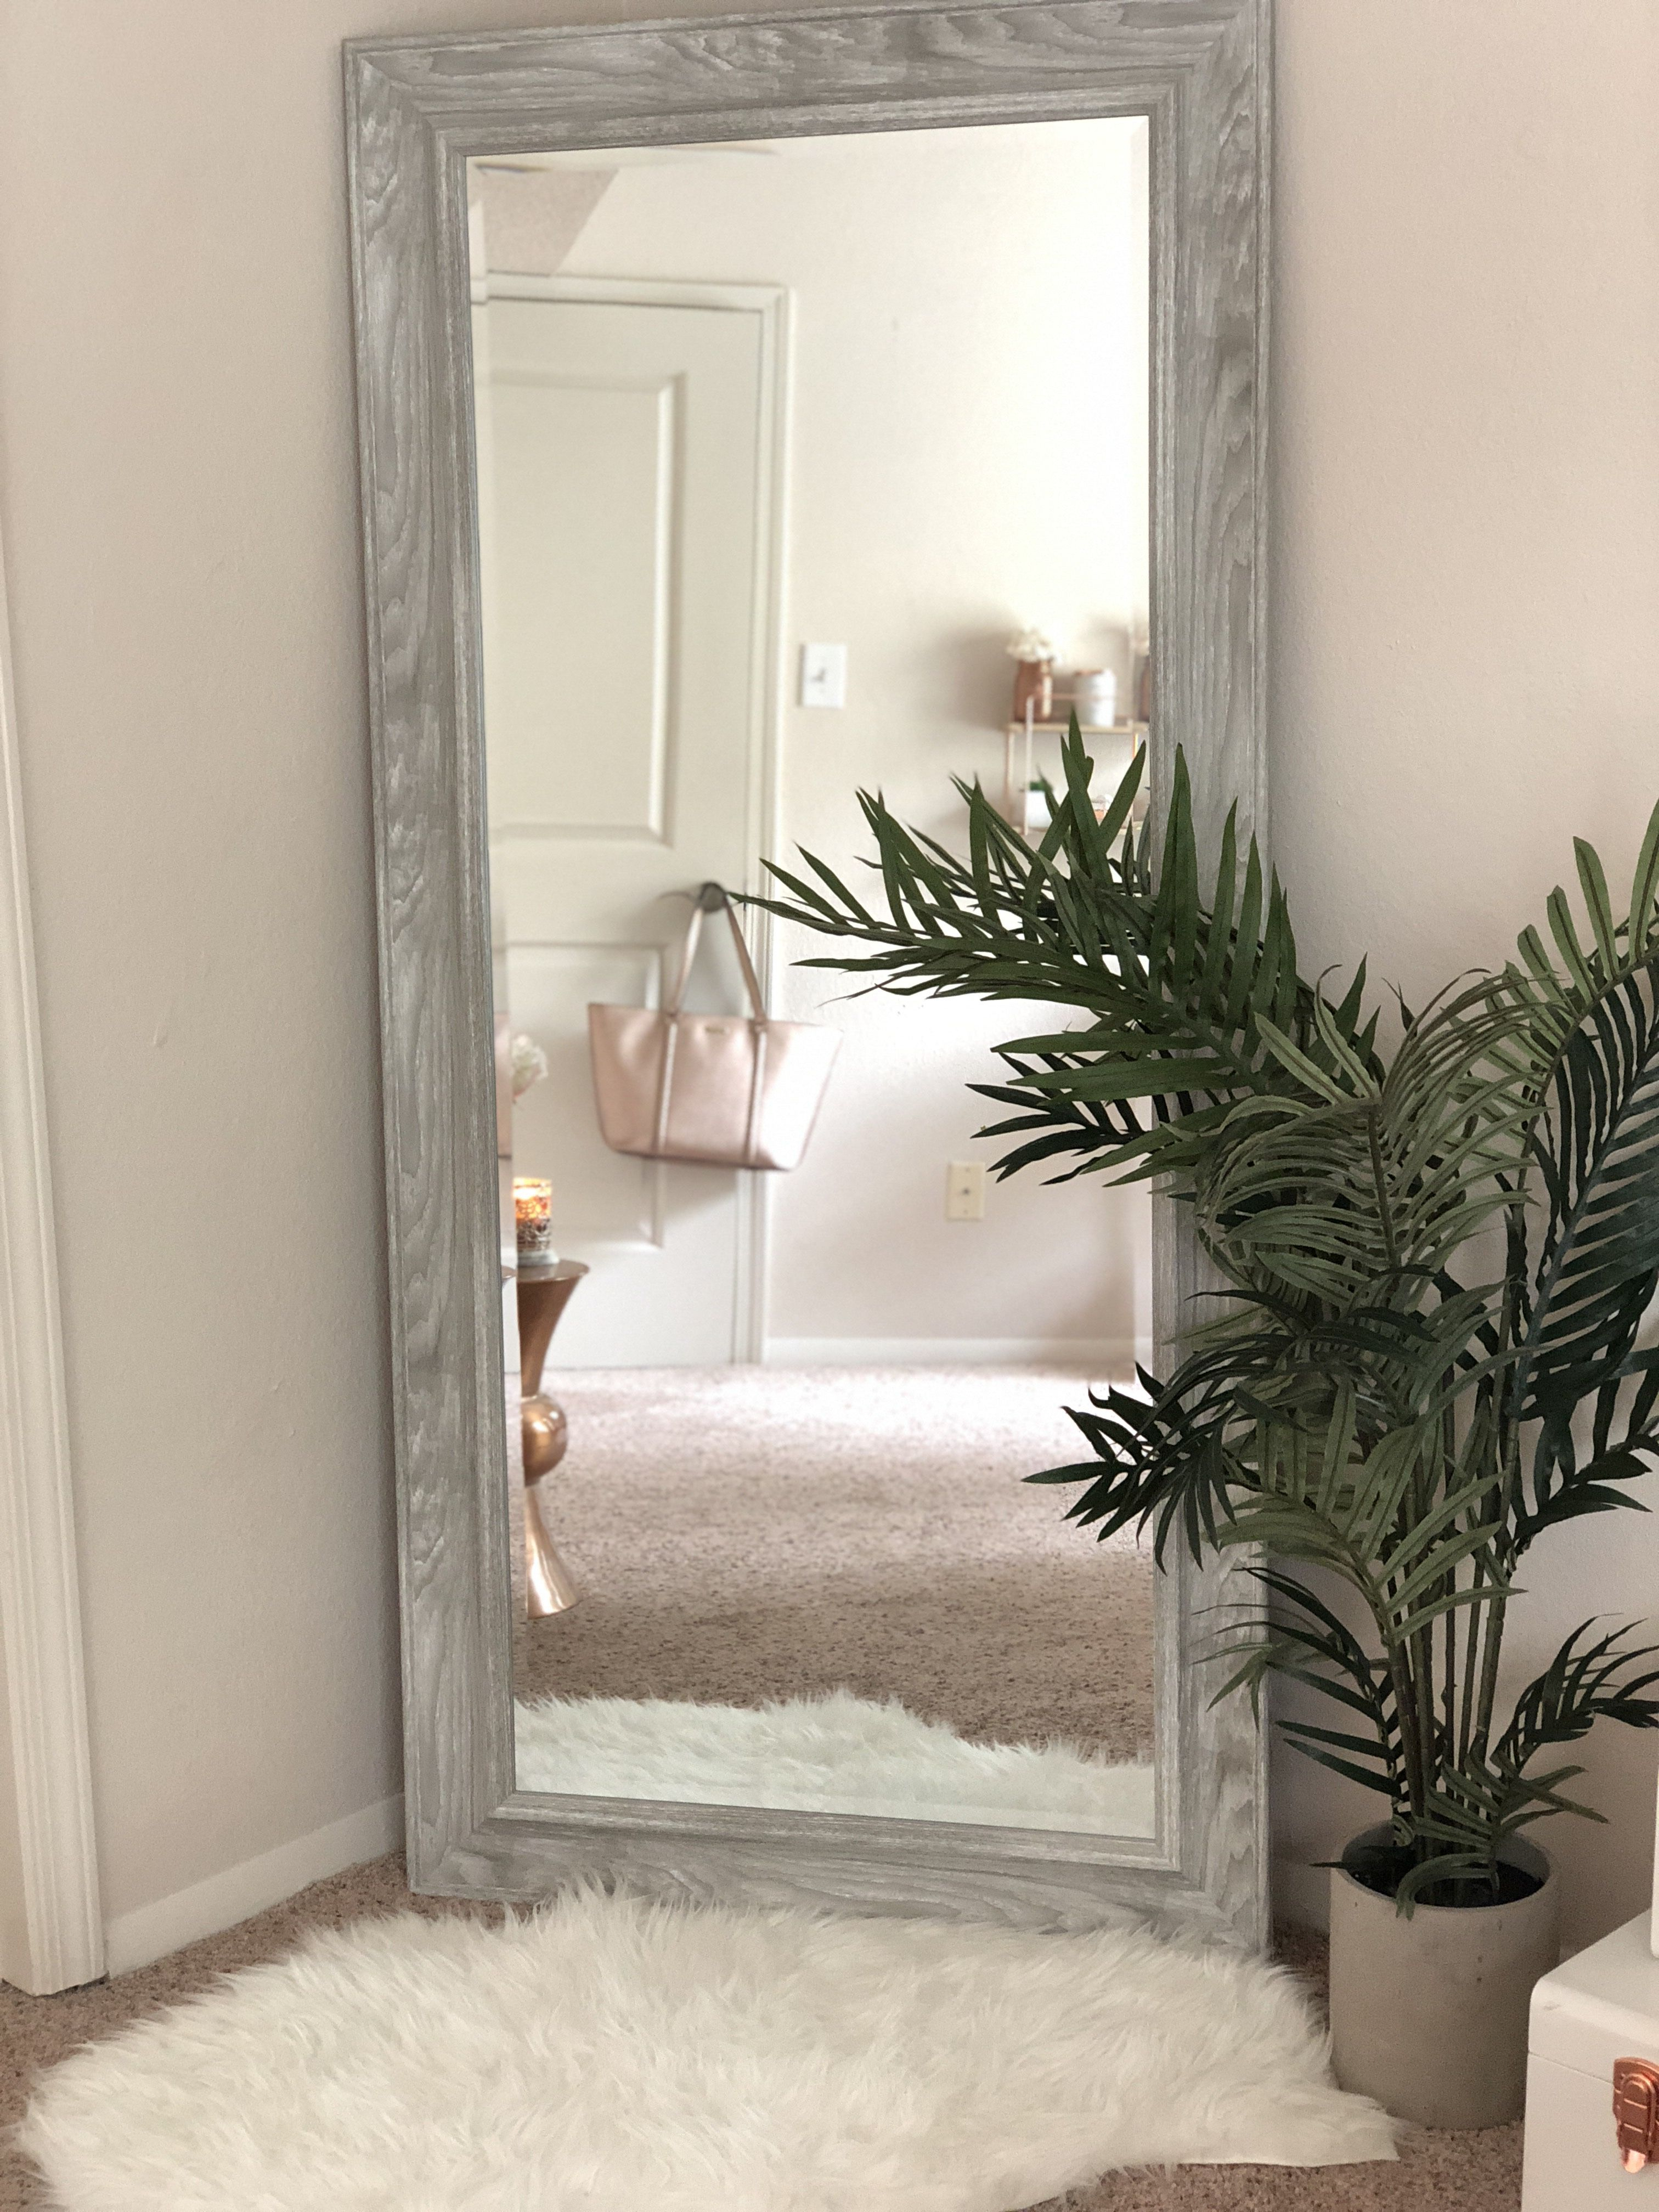 Full Length Mirror | Rose Gold In 2019 | Big Mirror In Inside Handcrafted Farmhouse Full Length Mirrors (View 14 of 30)